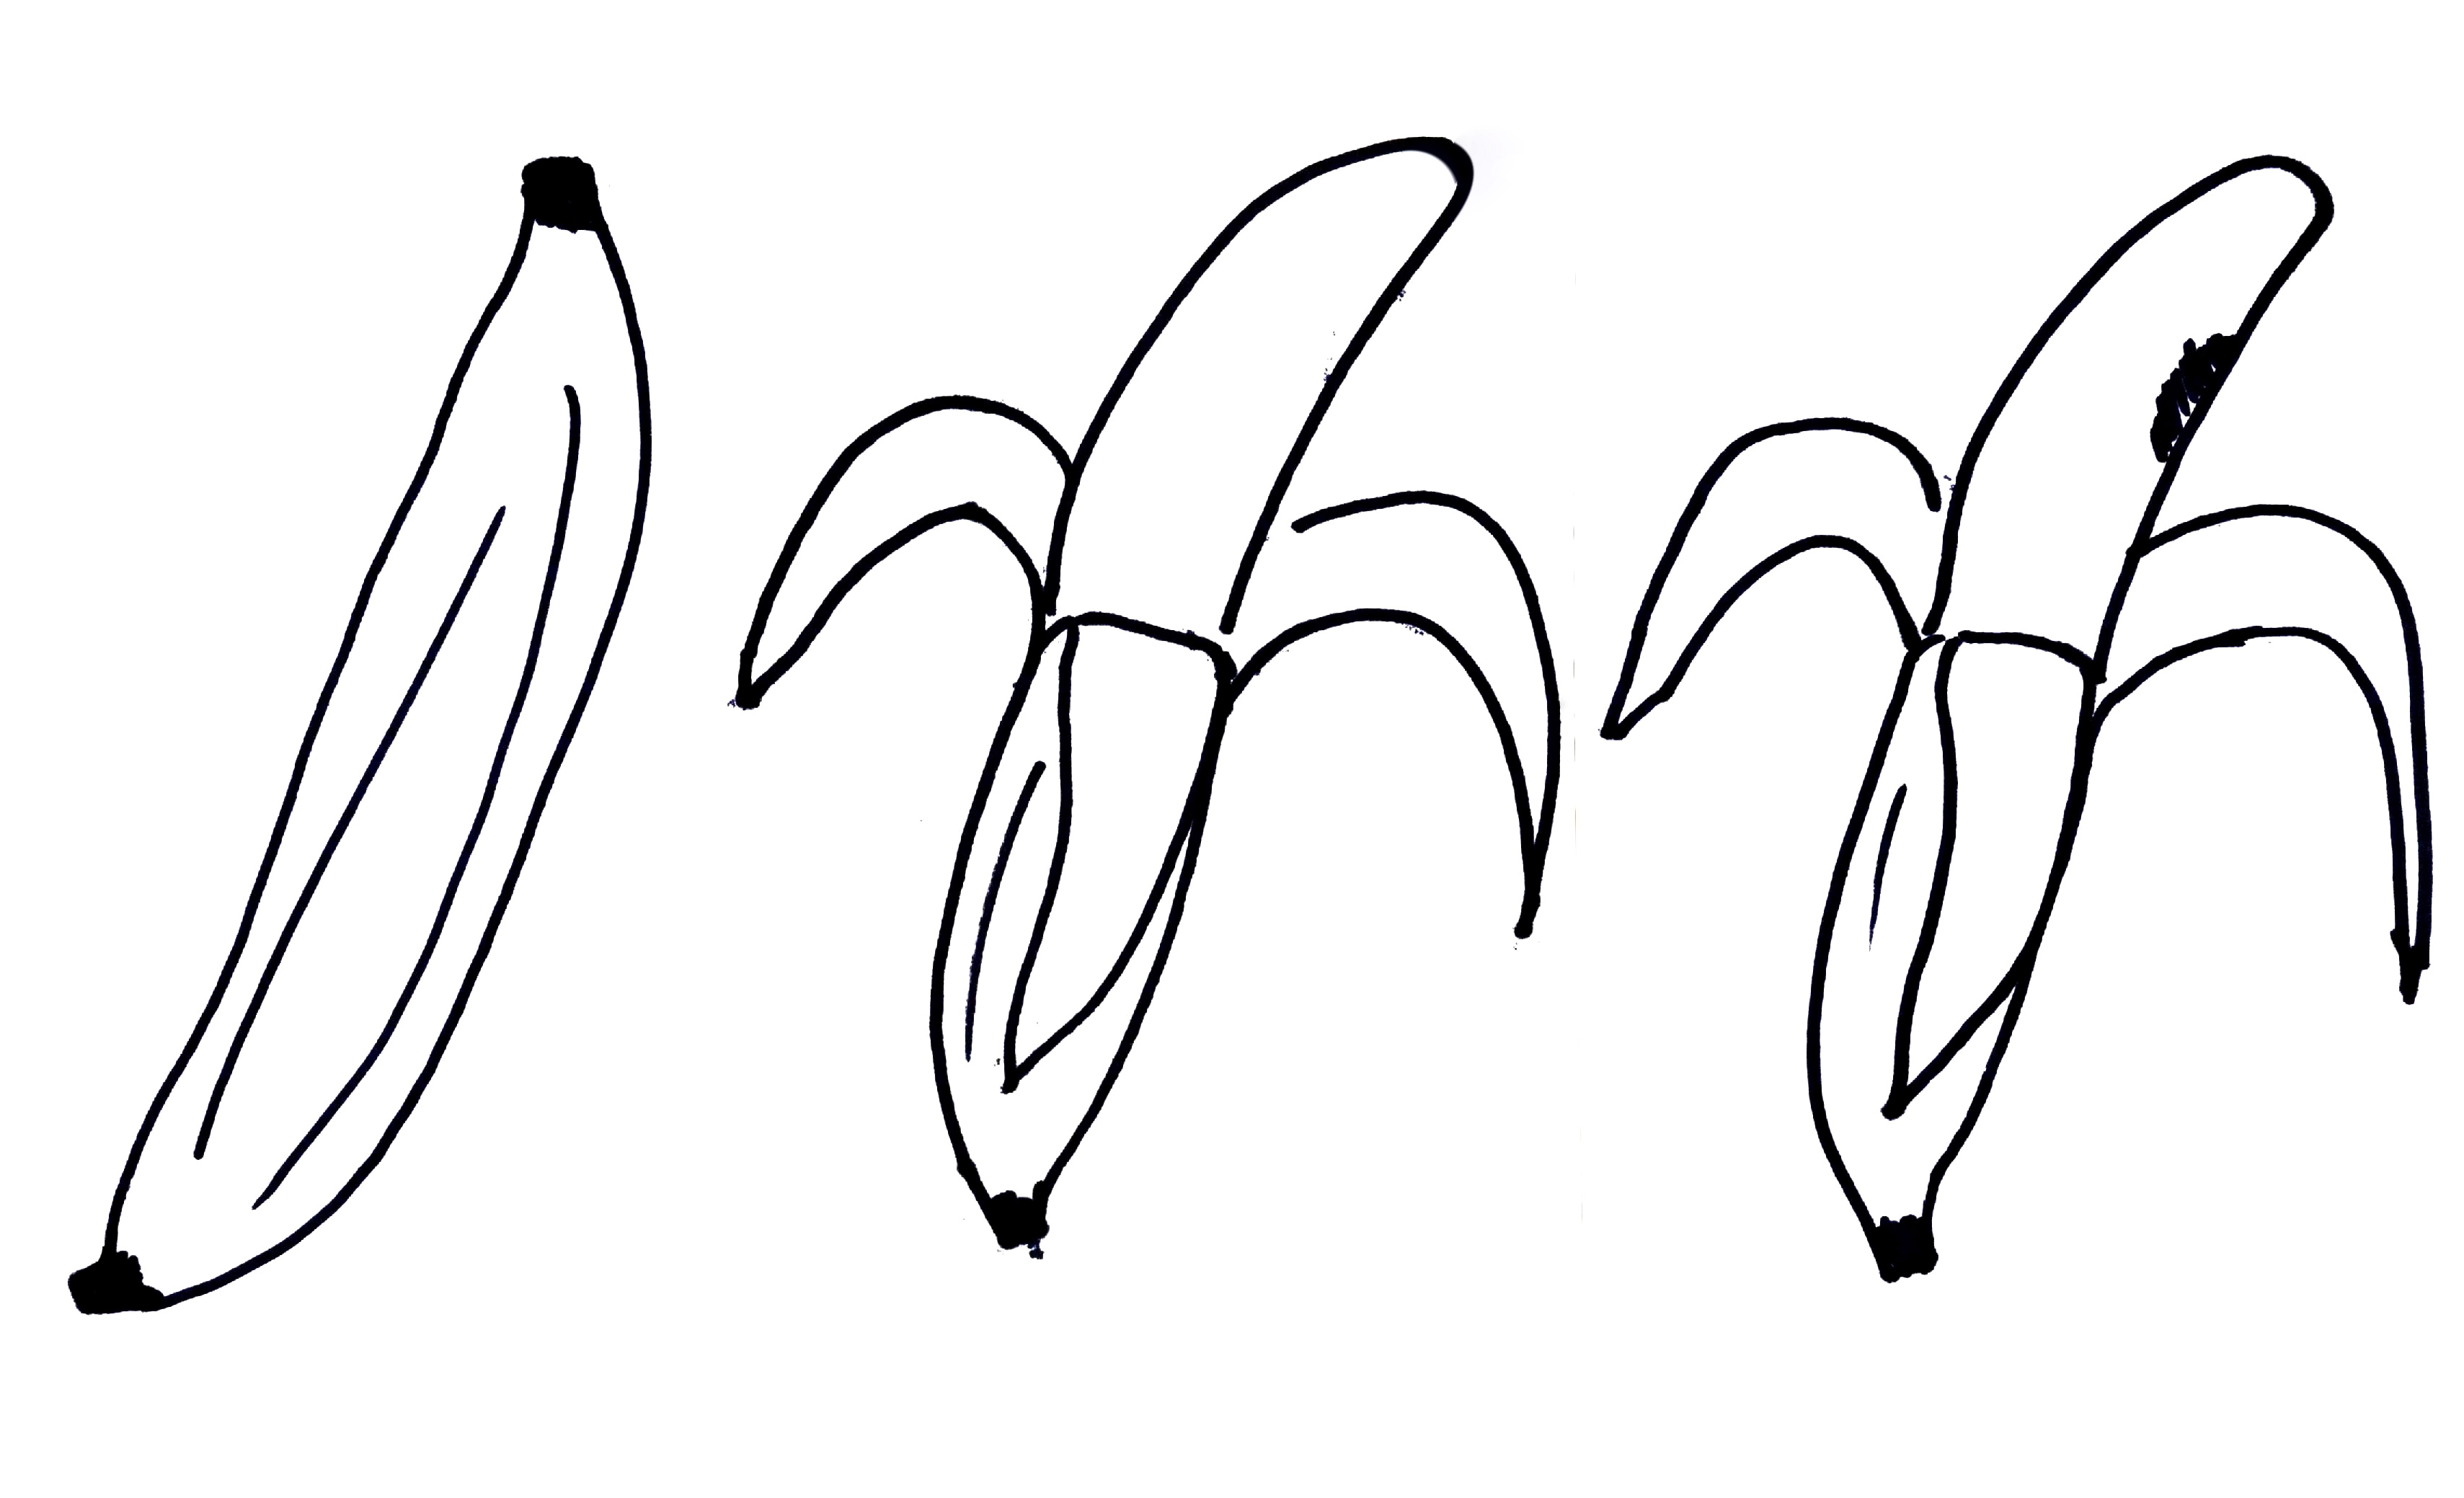 Banana Drawing Outline images